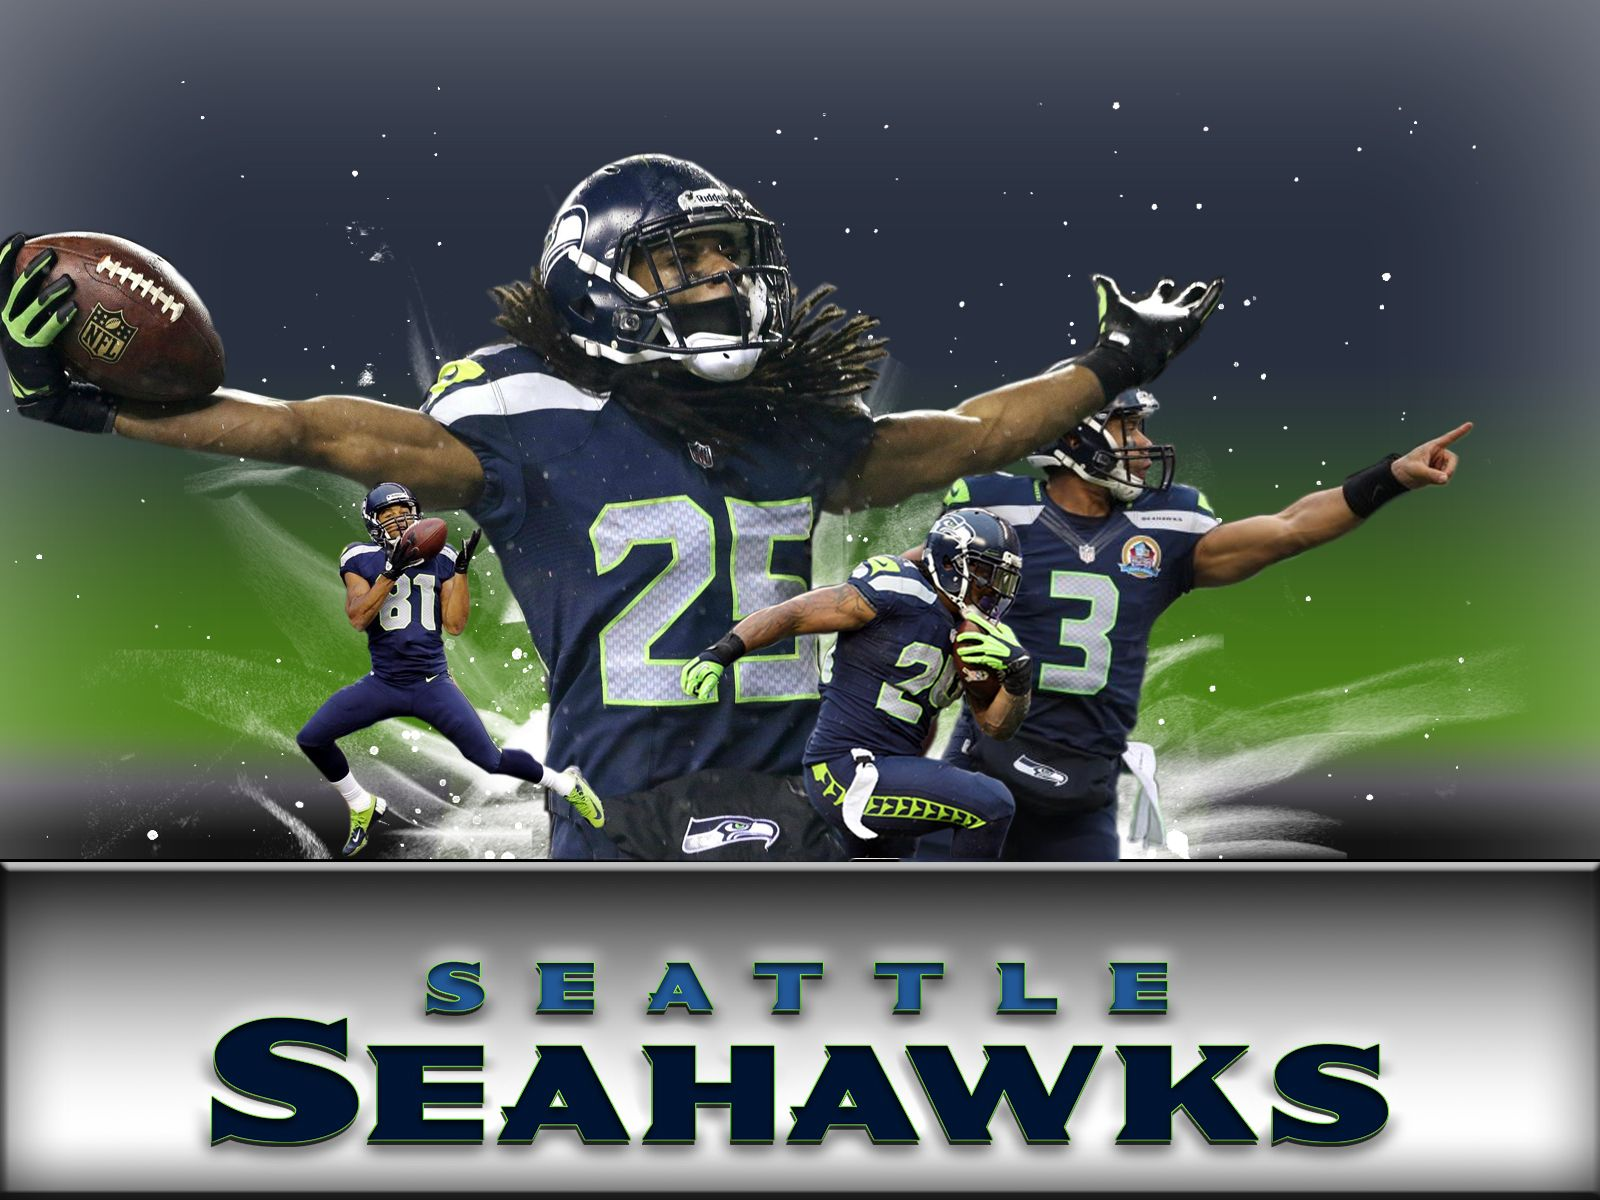 Nfl seattle seahawks wallpapers seattle seahawks pinterest nfl seattle seahawks wallpapers voltagebd Image collections